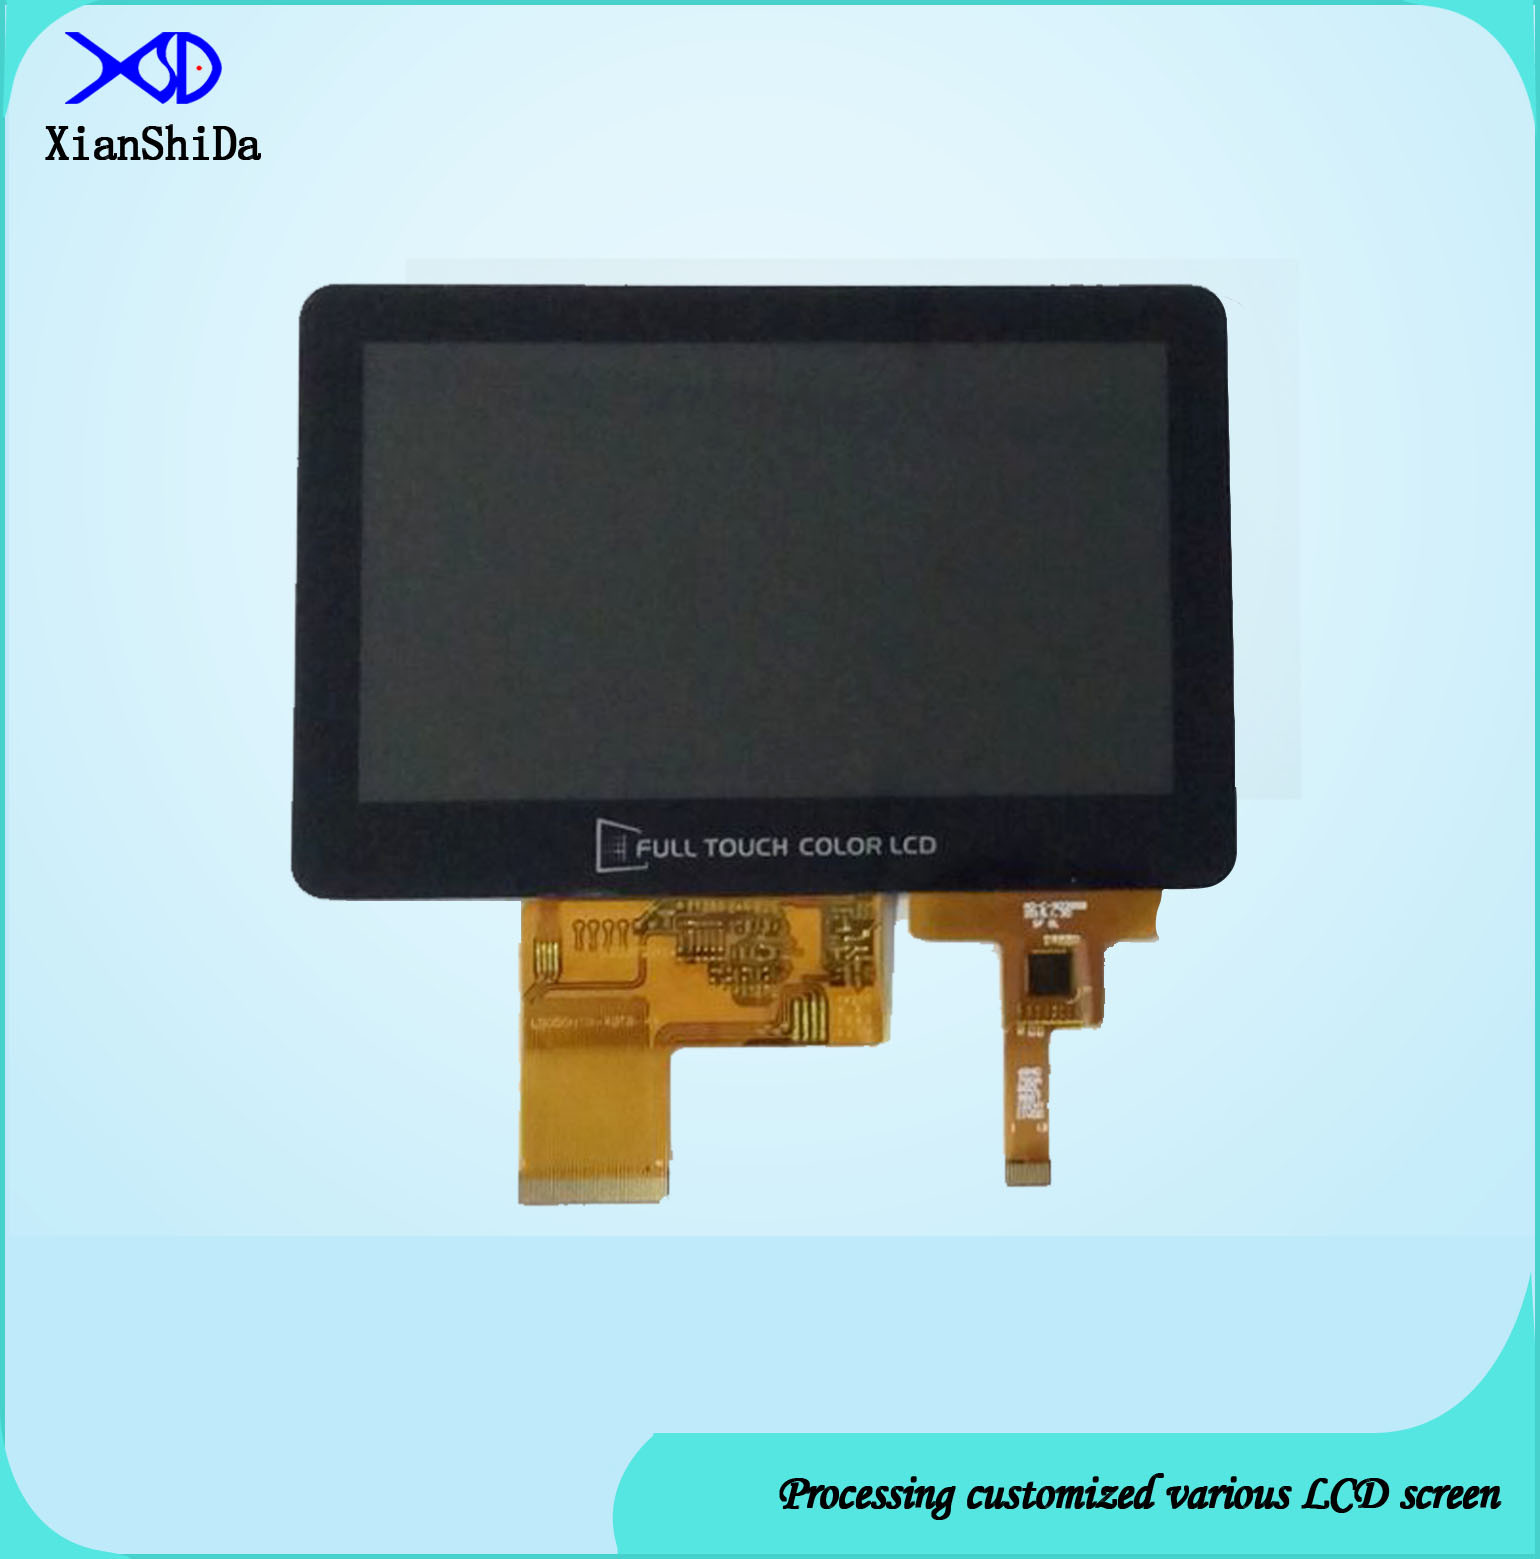 Full Viewing Angle 5.0 Inch TFT LCD Display with Capacitive Touch Panel